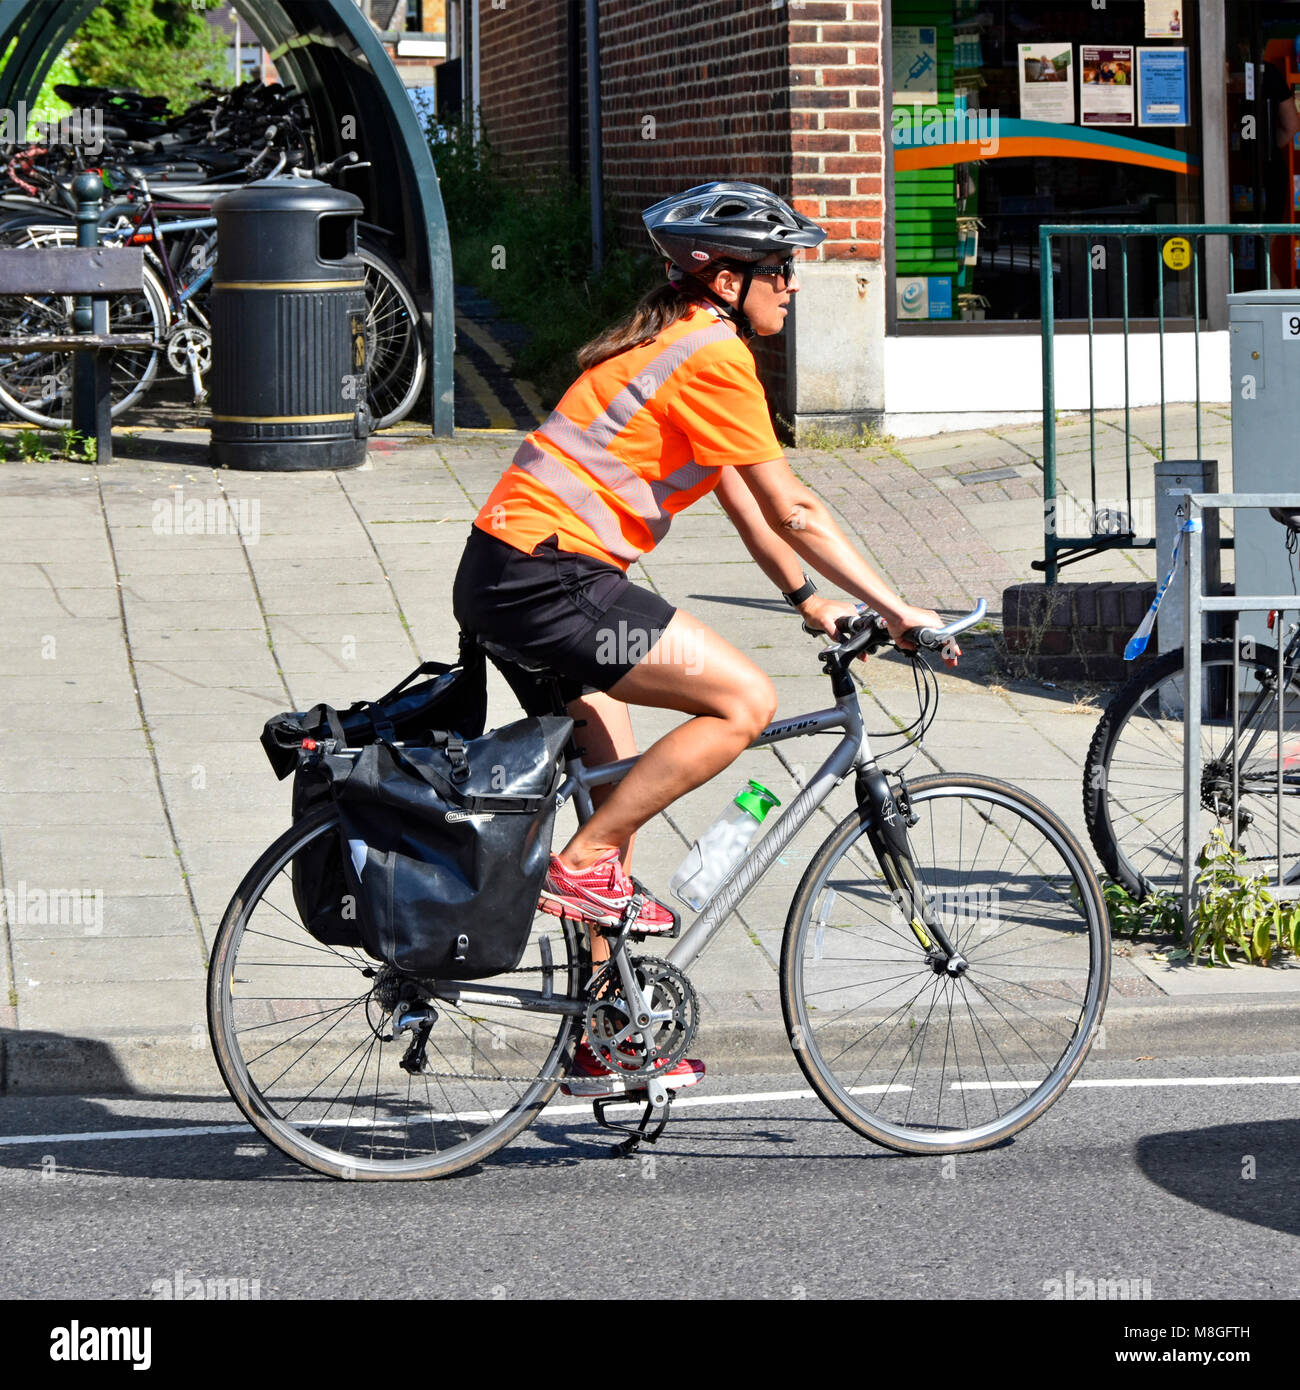 Young woman cycling and exercising by riding a bicycle  wearing bike helmet hard hat & high vis jacket travelling - Stock Image